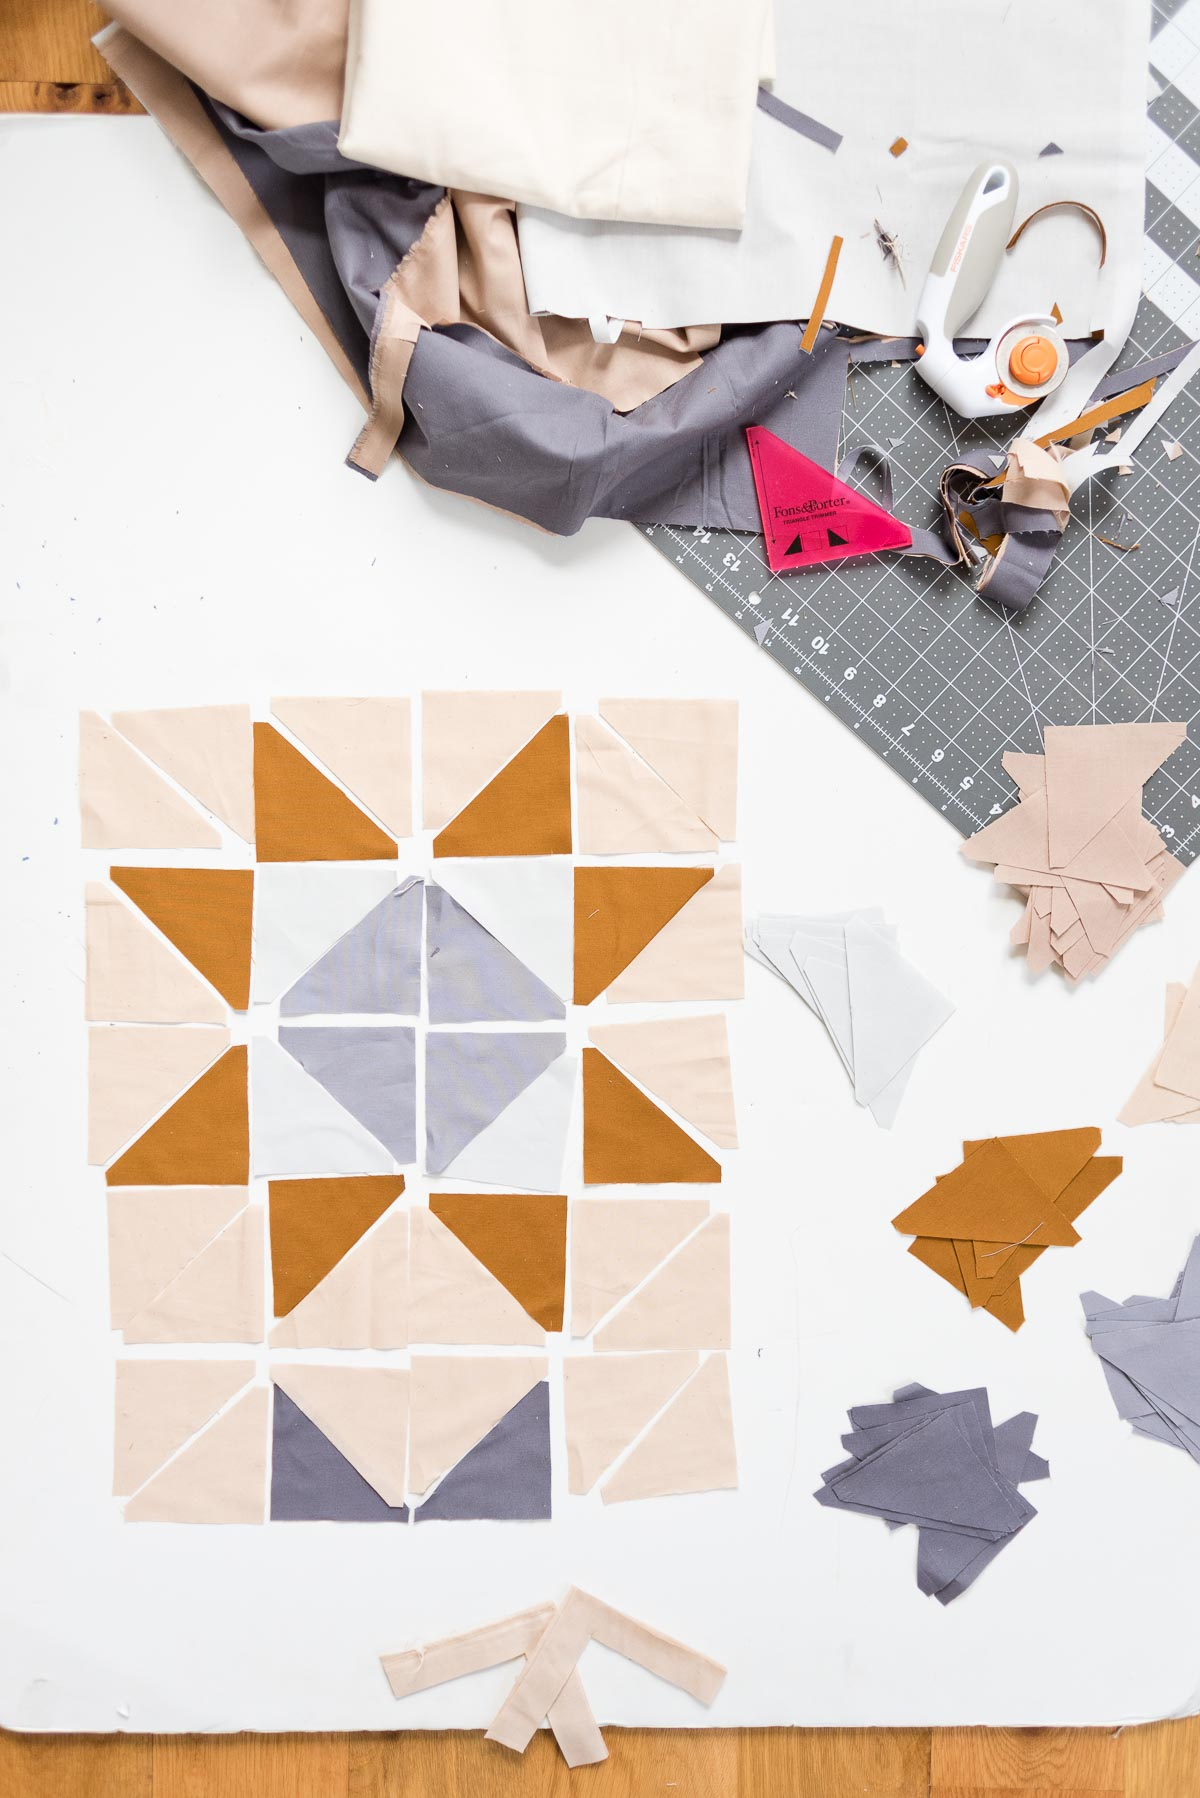 Cutting quilting triangles out of fabric into a pattern.